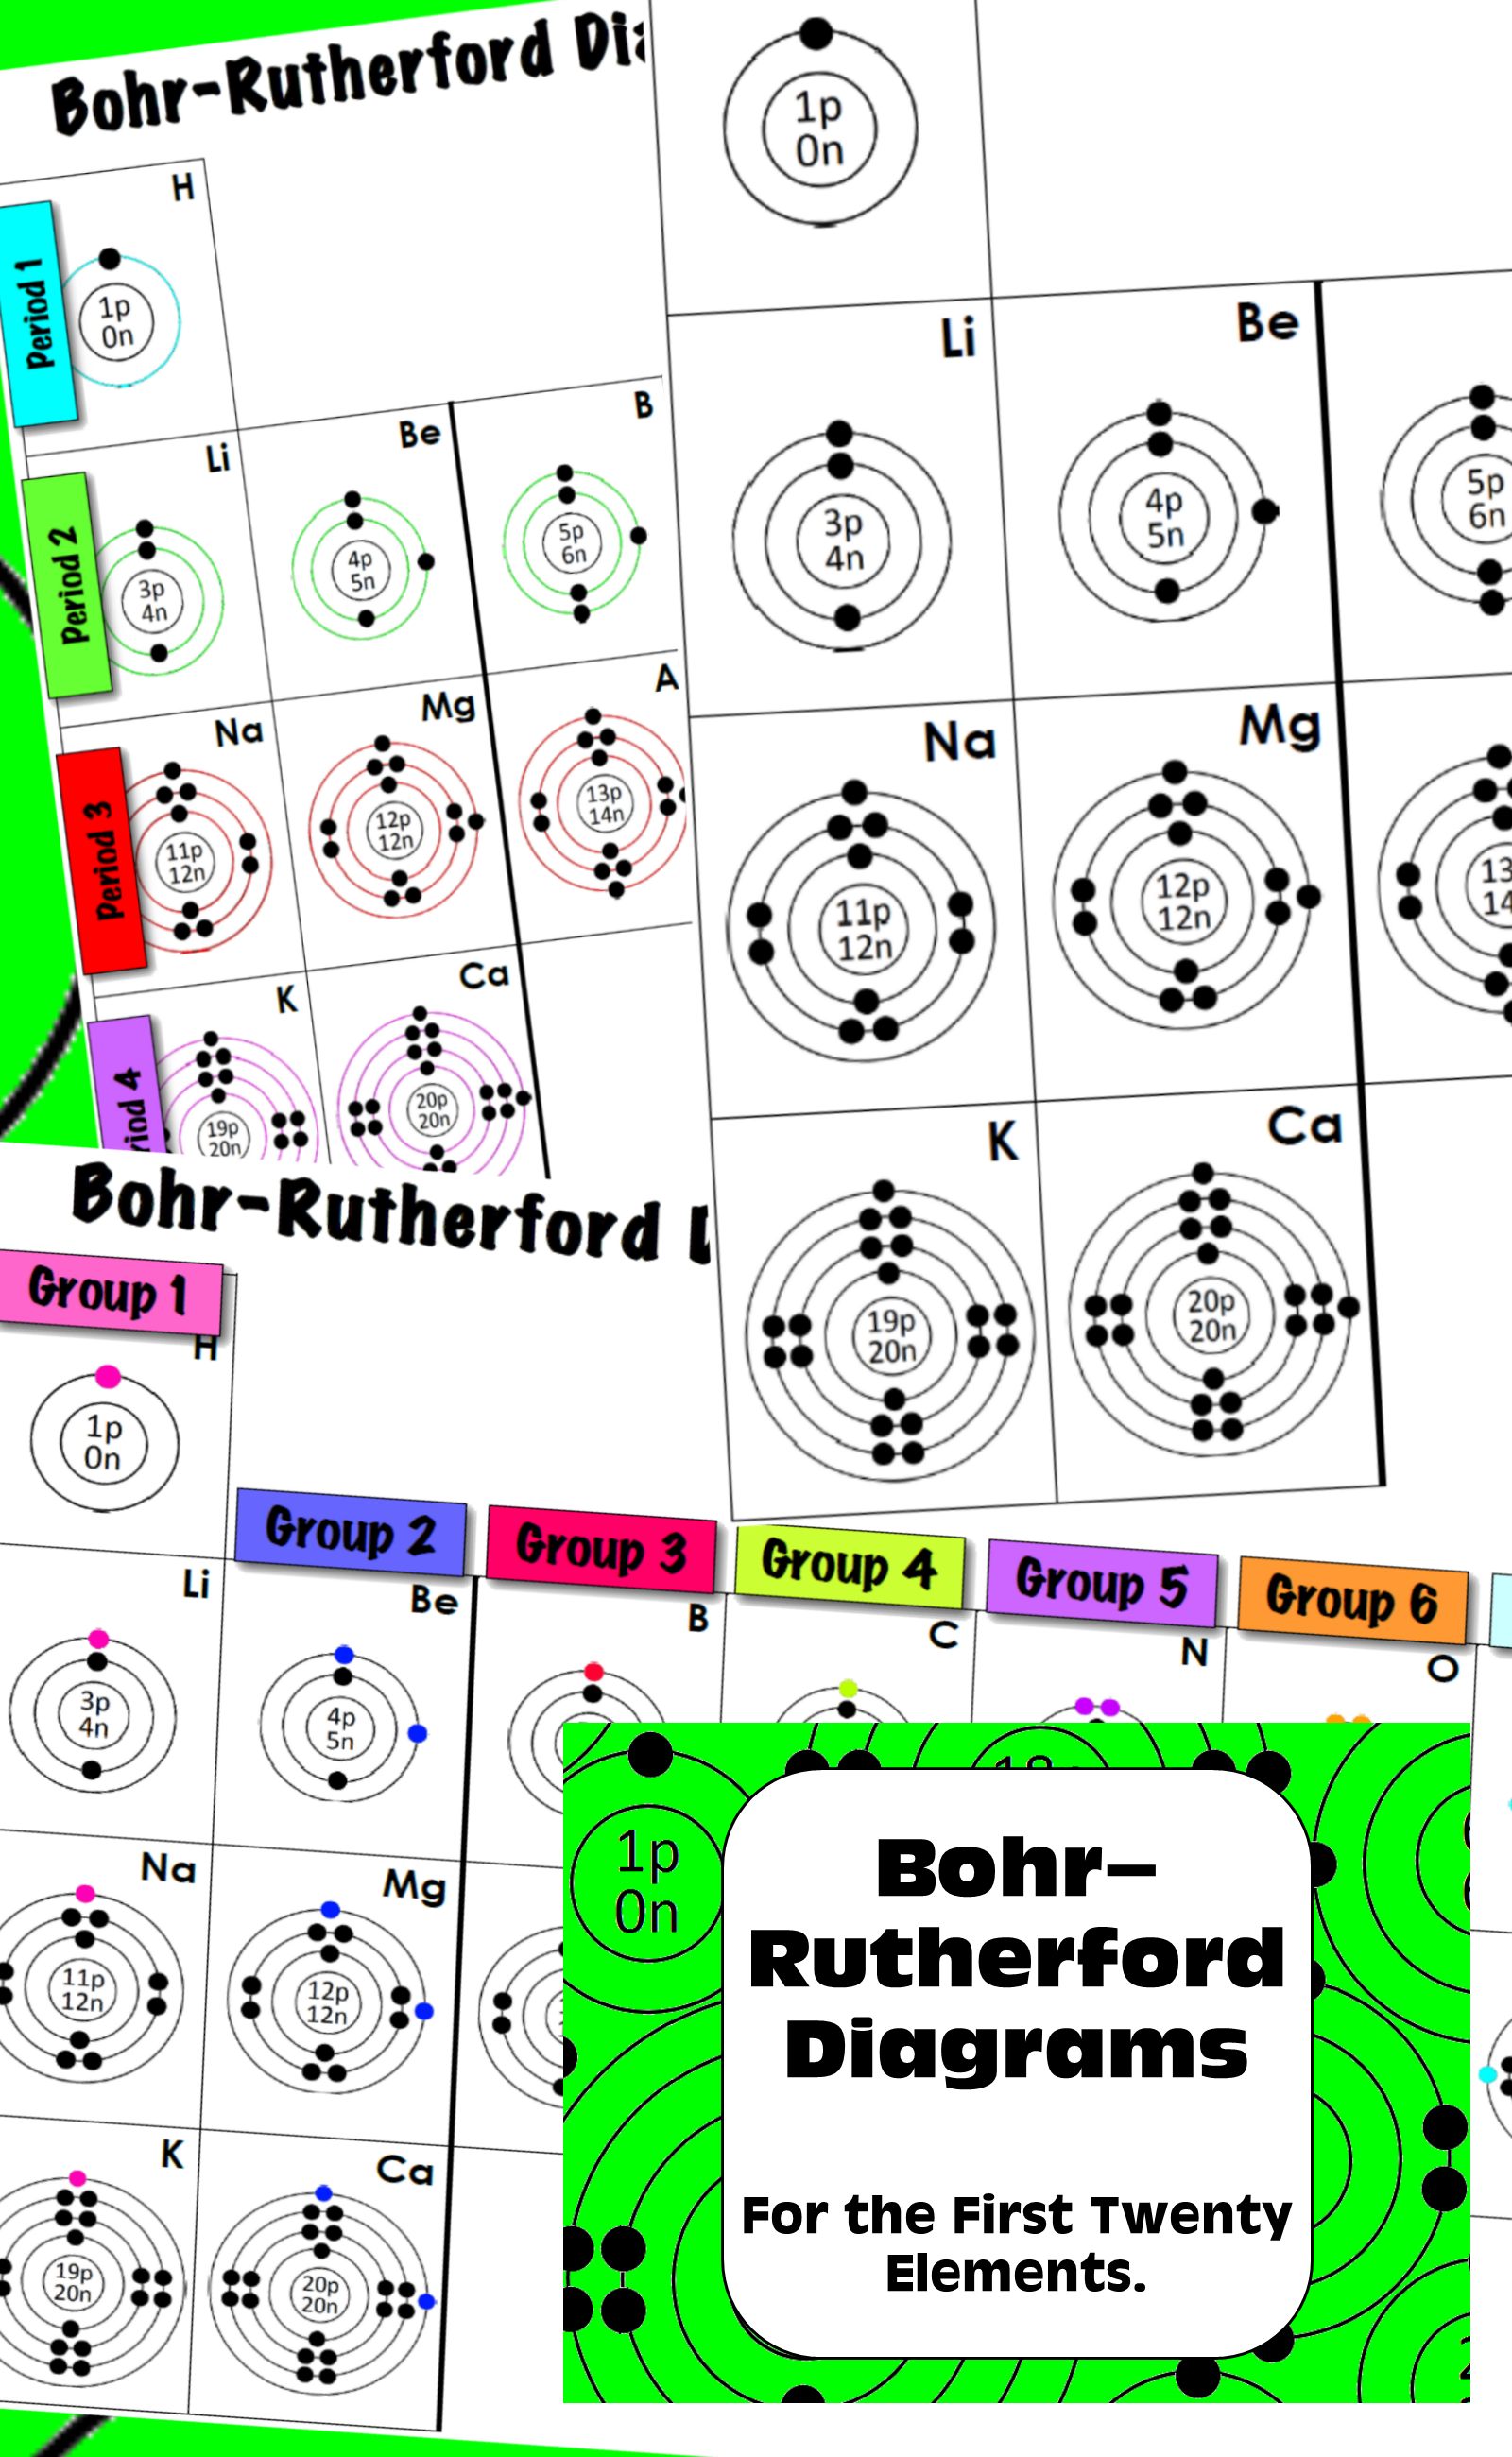 bohr rutherford diagrams for first twenty elements student graphical organizer color coded answers elements periodictable bohr rutherford chemistry  [ 1600 x 2600 Pixel ]